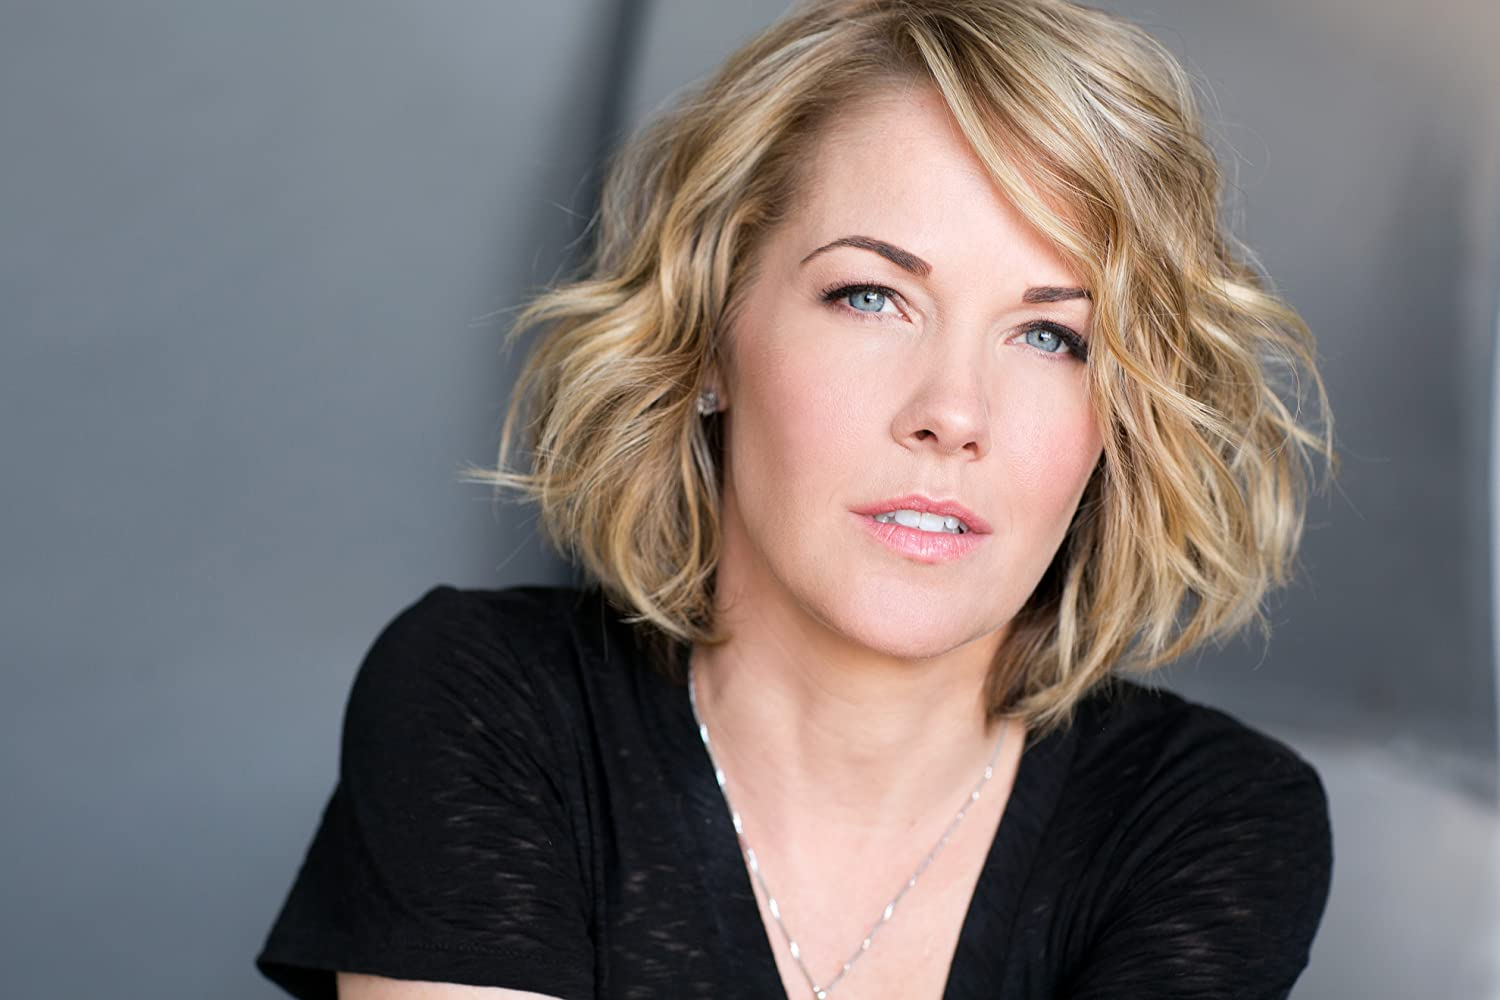 Andrea Anders born May 10, 1975 (age 43) Andrea Anders born May 10, 1975 (age 43) new photo